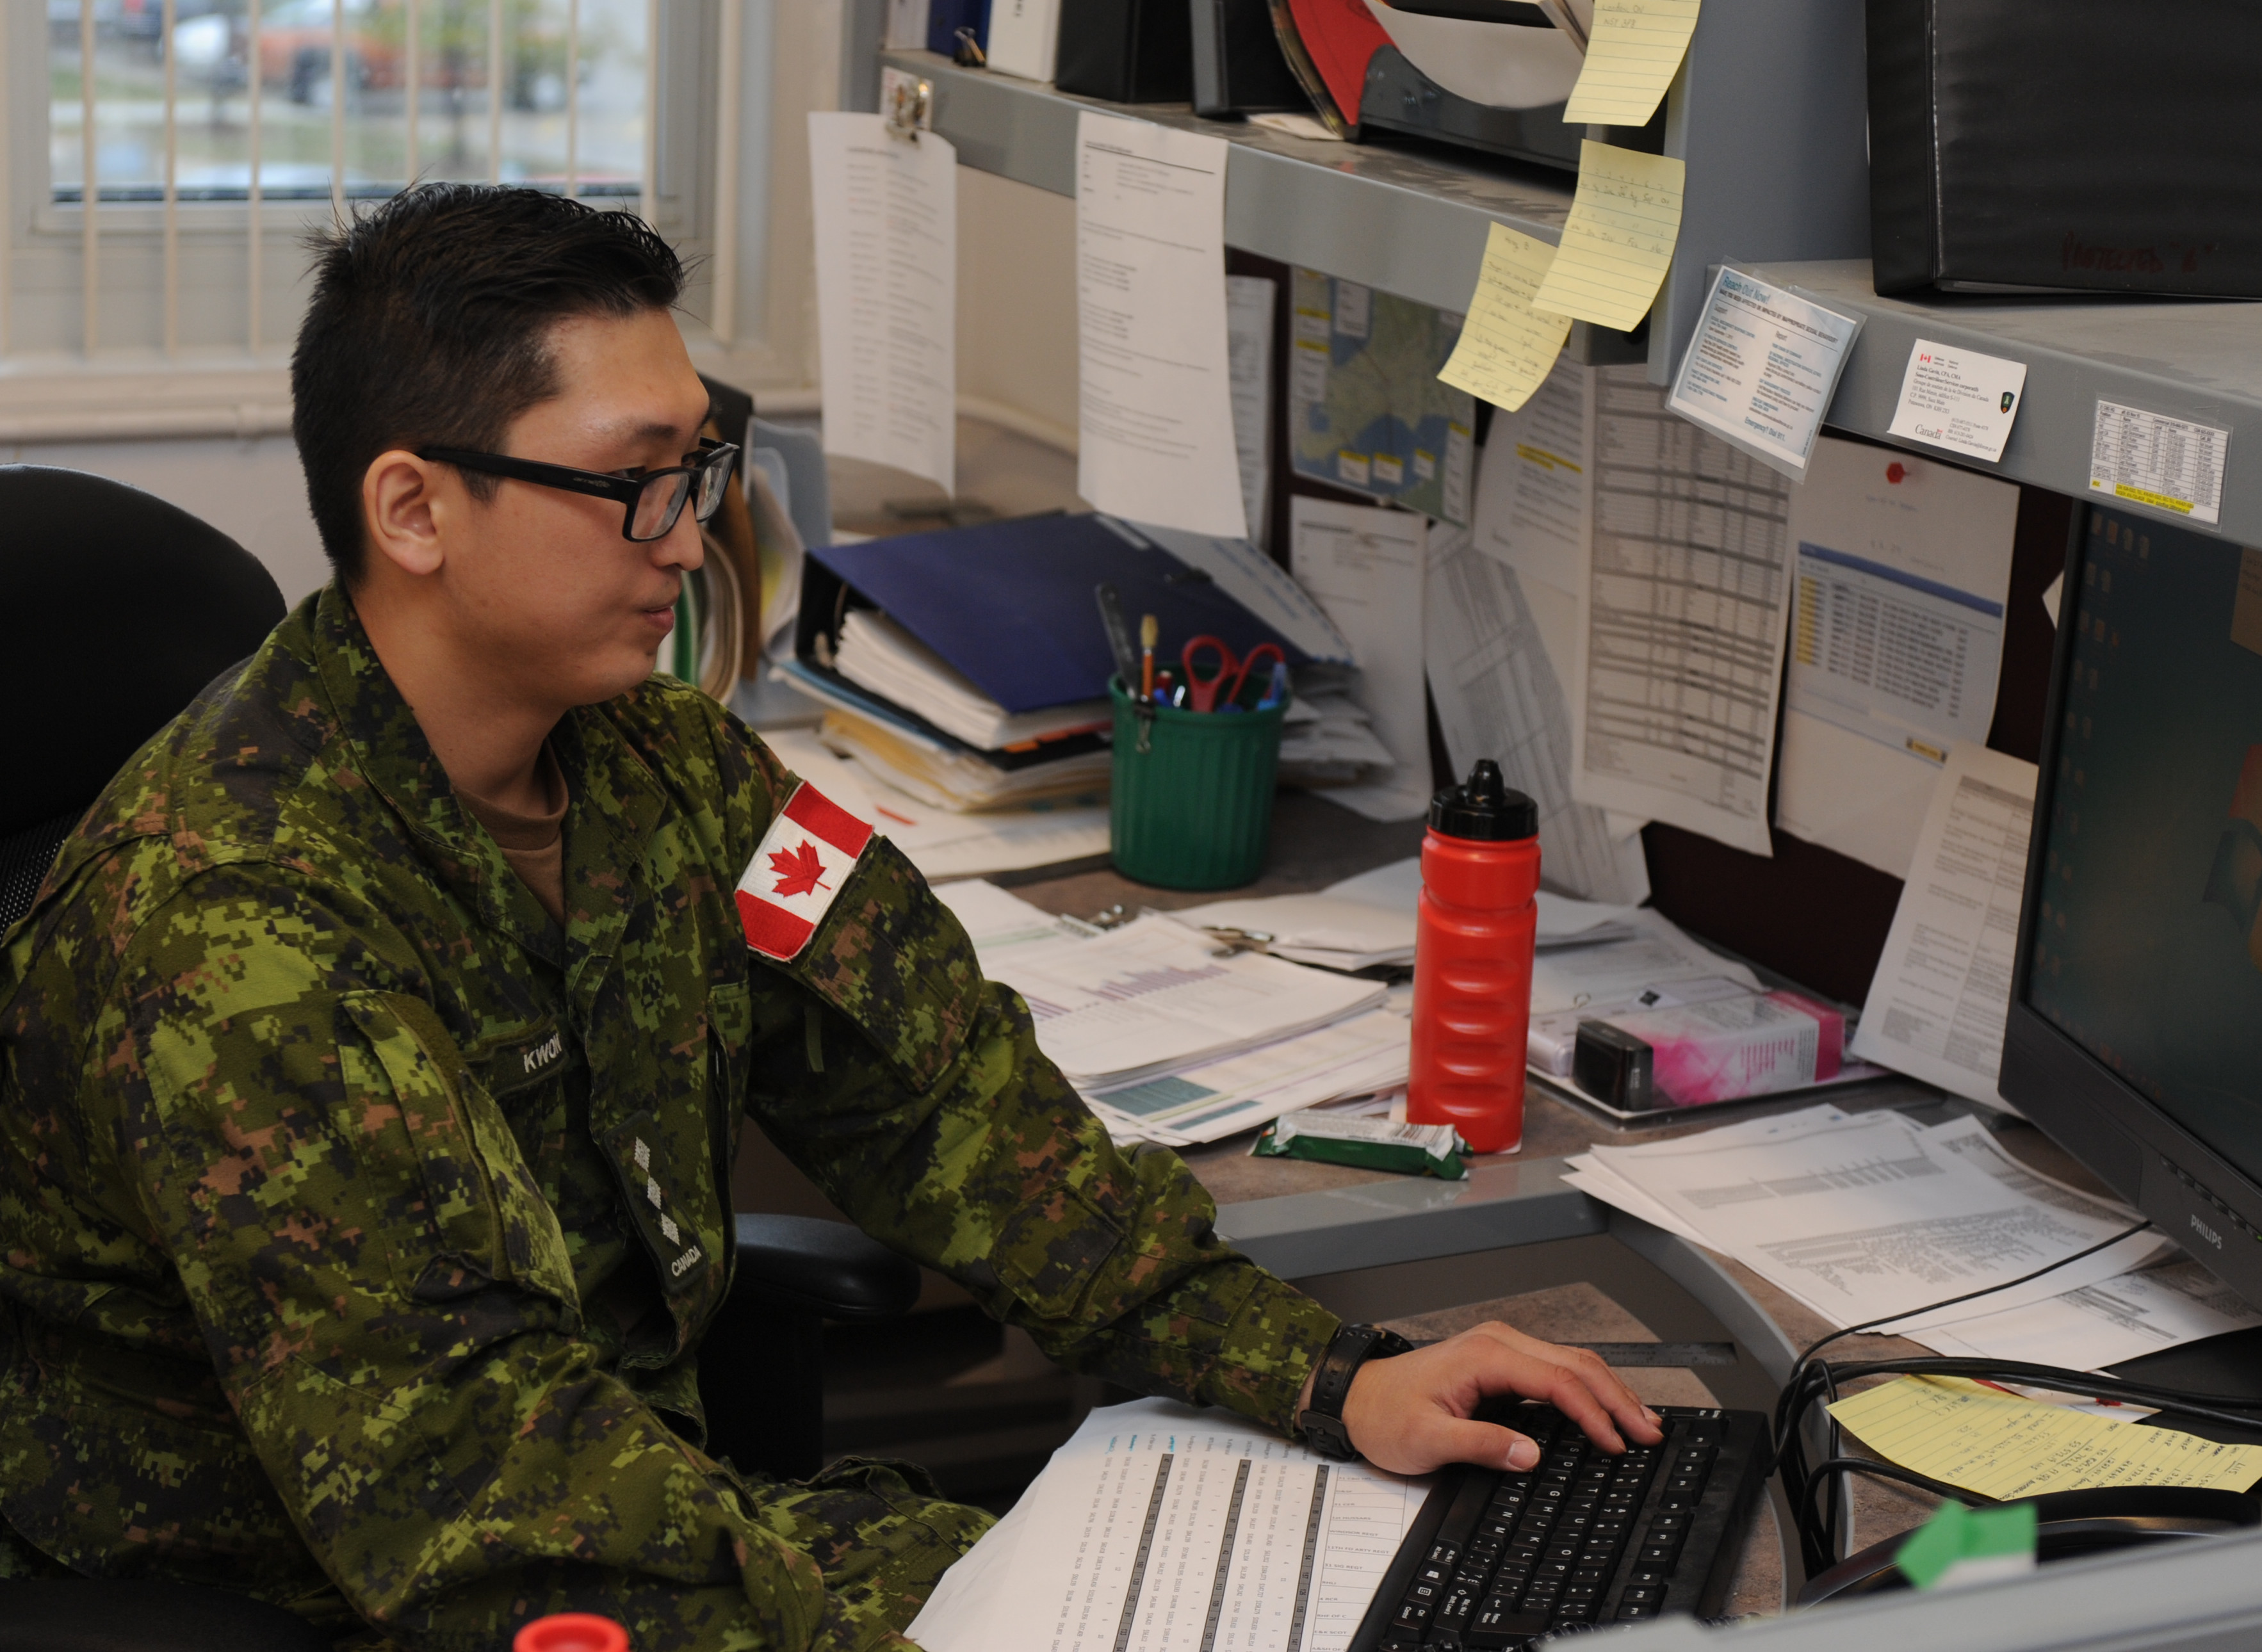 Captain Suhan Kwon at work at G8, 31 Canadian Brigade Group Headquarters in London, ON. Photo by: Capt M. O'Leary, Public Affairs, 31 CBG ©DND/MDN 2016